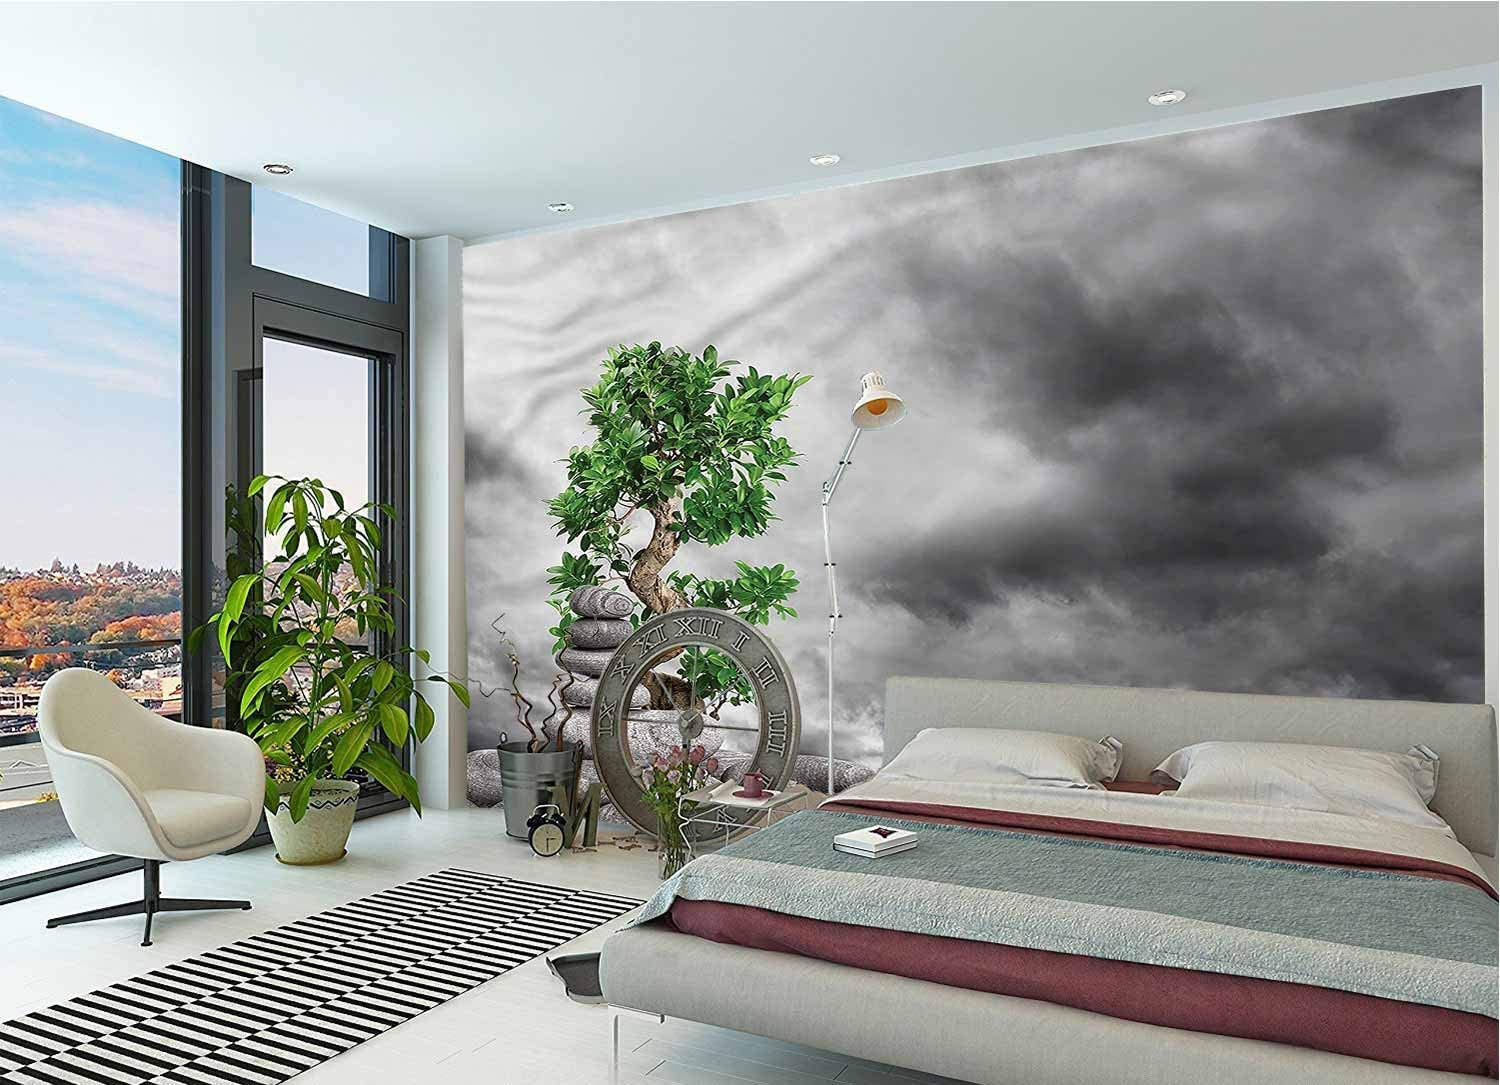 LCGGDB Zen Large Wall Mural,Stone Piles Balance Therapy Removable Large Sticker Foil Wall Decor for Office Kids Bedroom Nursery Family Decor-144x100 Inch